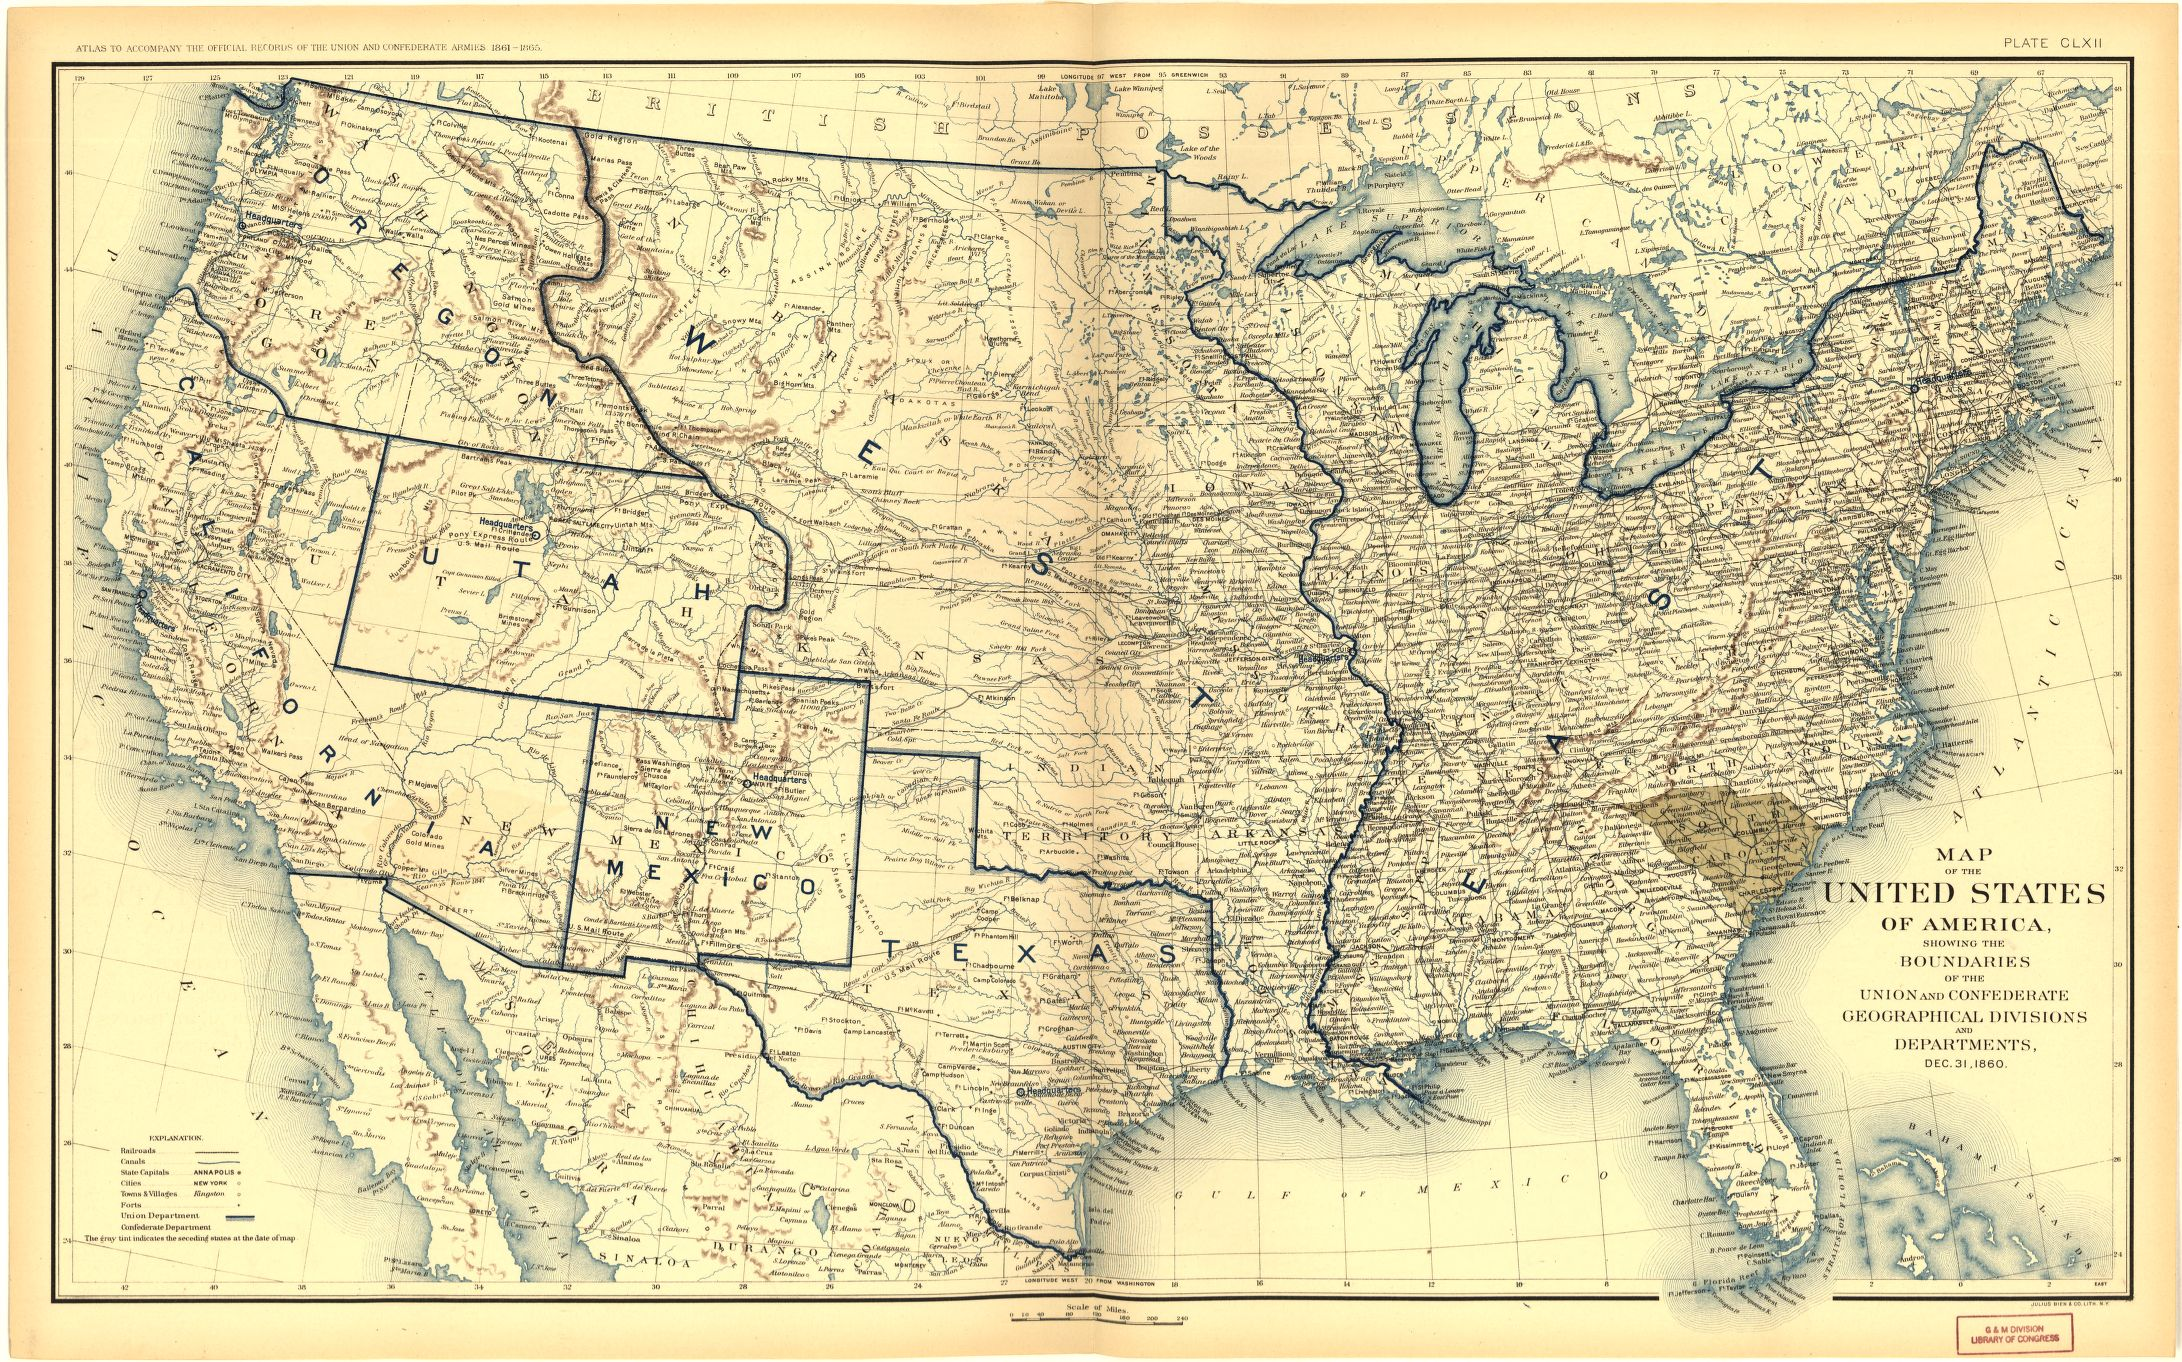 Places In American Civil War History Maps Depicting Prologue To War And Secession March